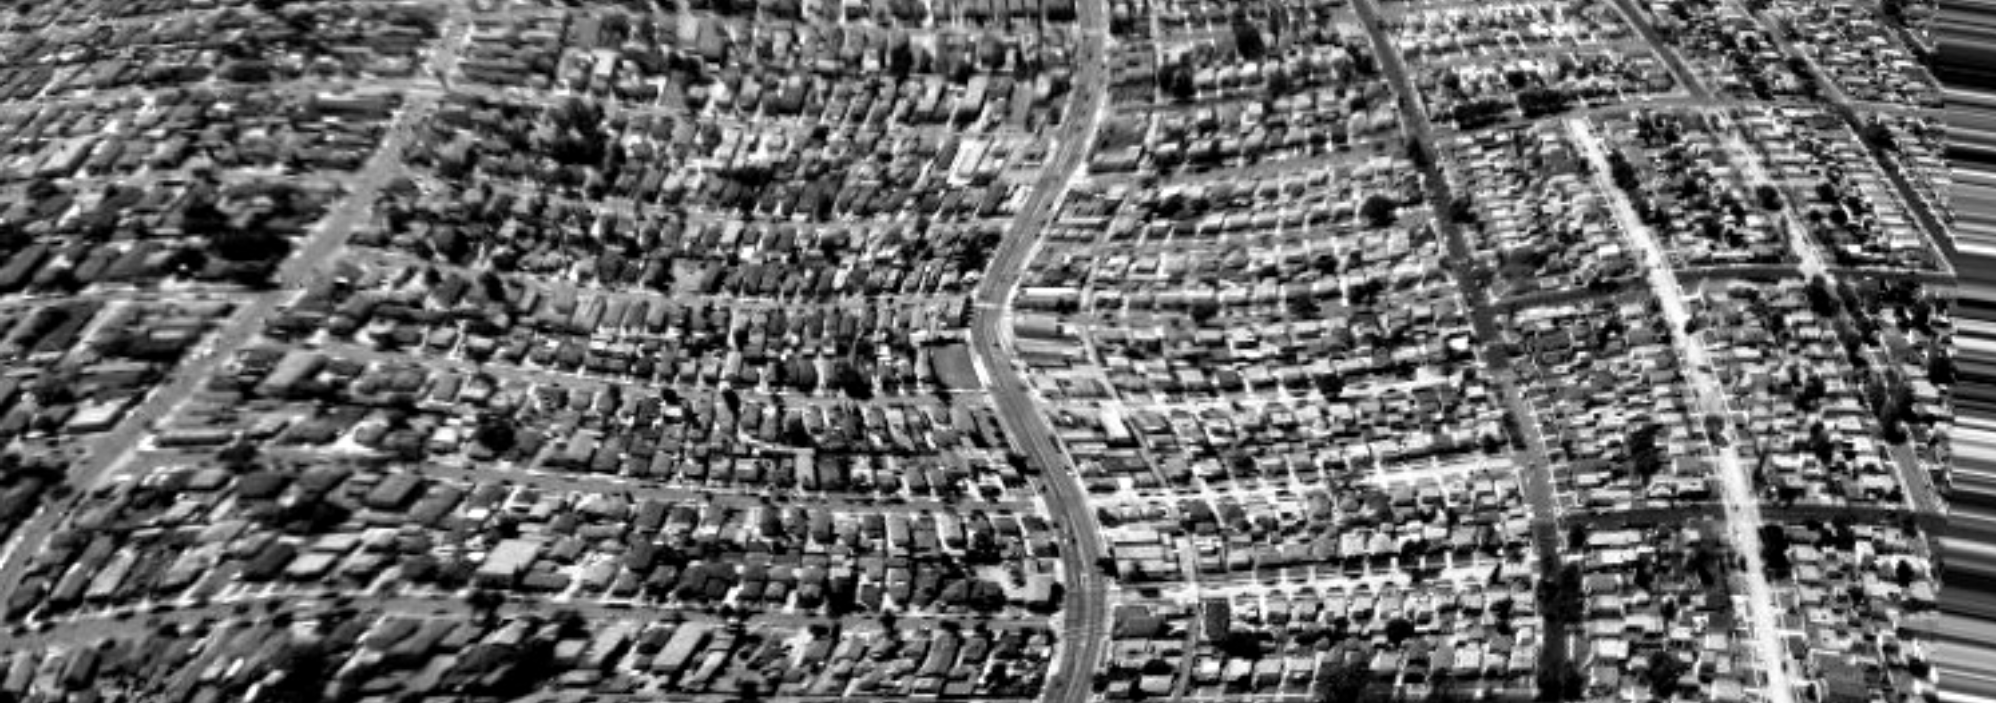 Overhead view of a neighborhood